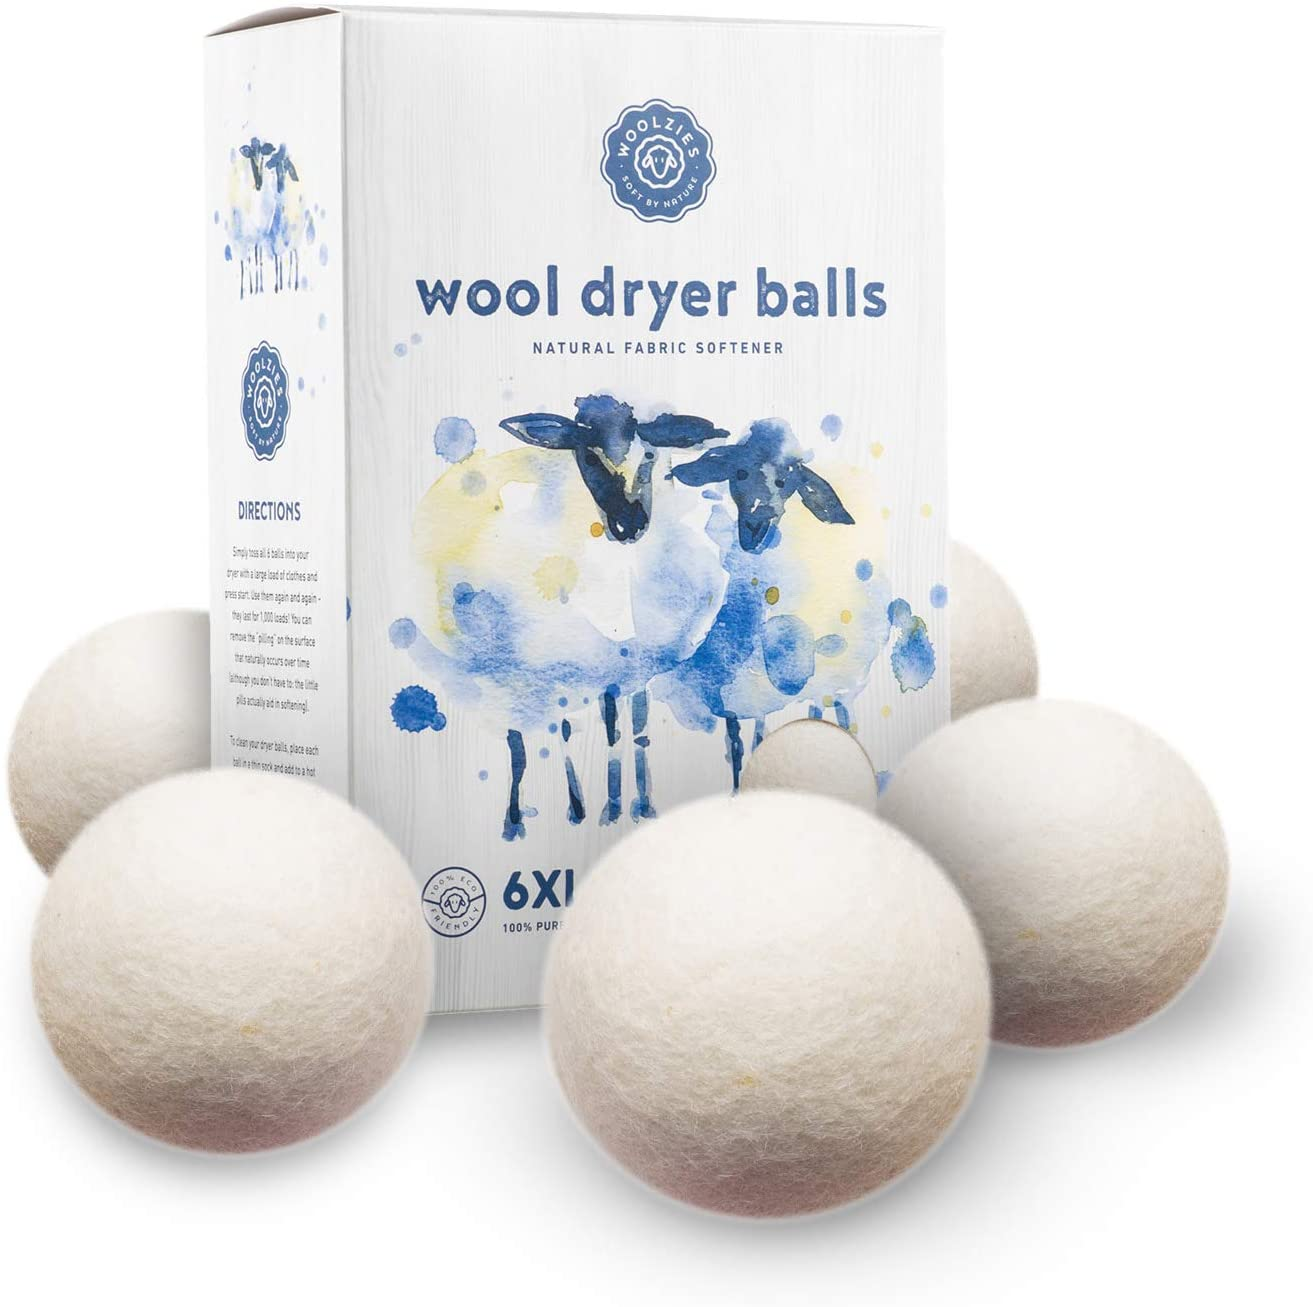 Woolzies Wool Dryer Balls Organic: Our Big Wool Spheres are the Best fabric softener | 6-Pack XL Dryer Balls for Laundry is Made with New Zealand Wool | Use Laundry Balls for Dryer with Essential Oils